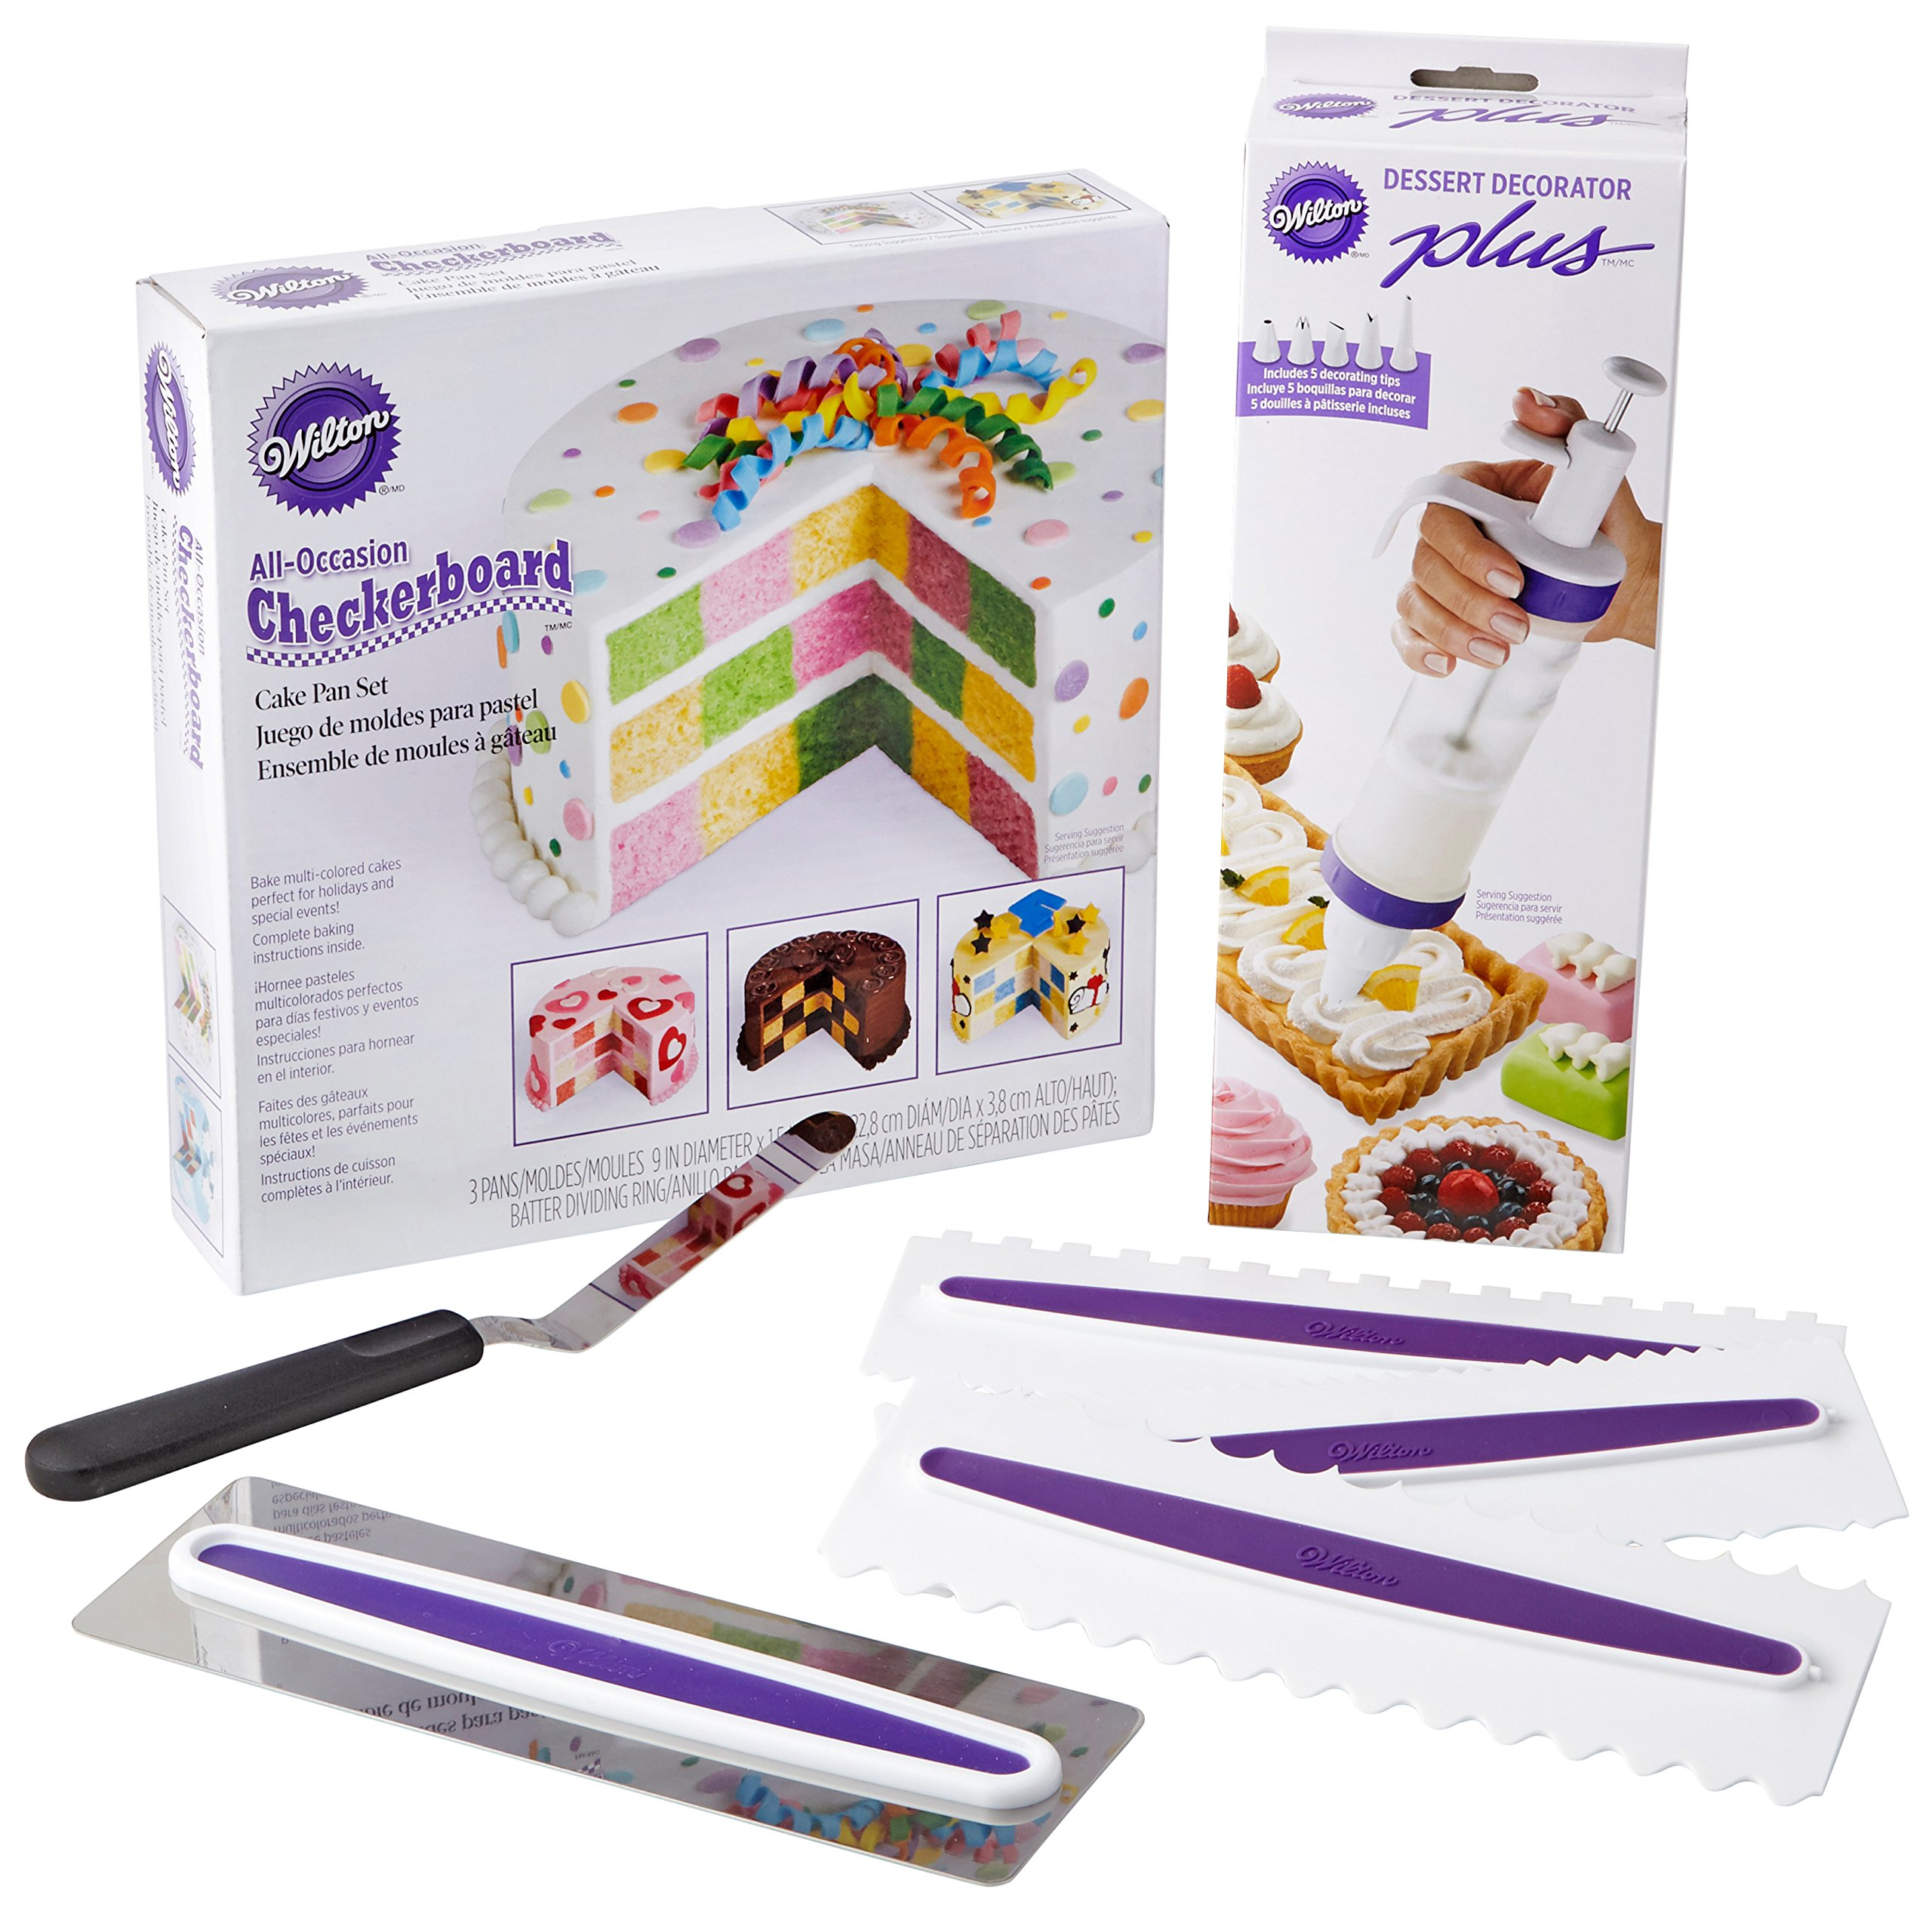 Wilton How to Make a Checkerboard Cake Decorating Set, 7-Piece - with Round Cake Pans, Decorating Tool, Icing  Smoother, 3 Icing Combs and Spatula by Wilton